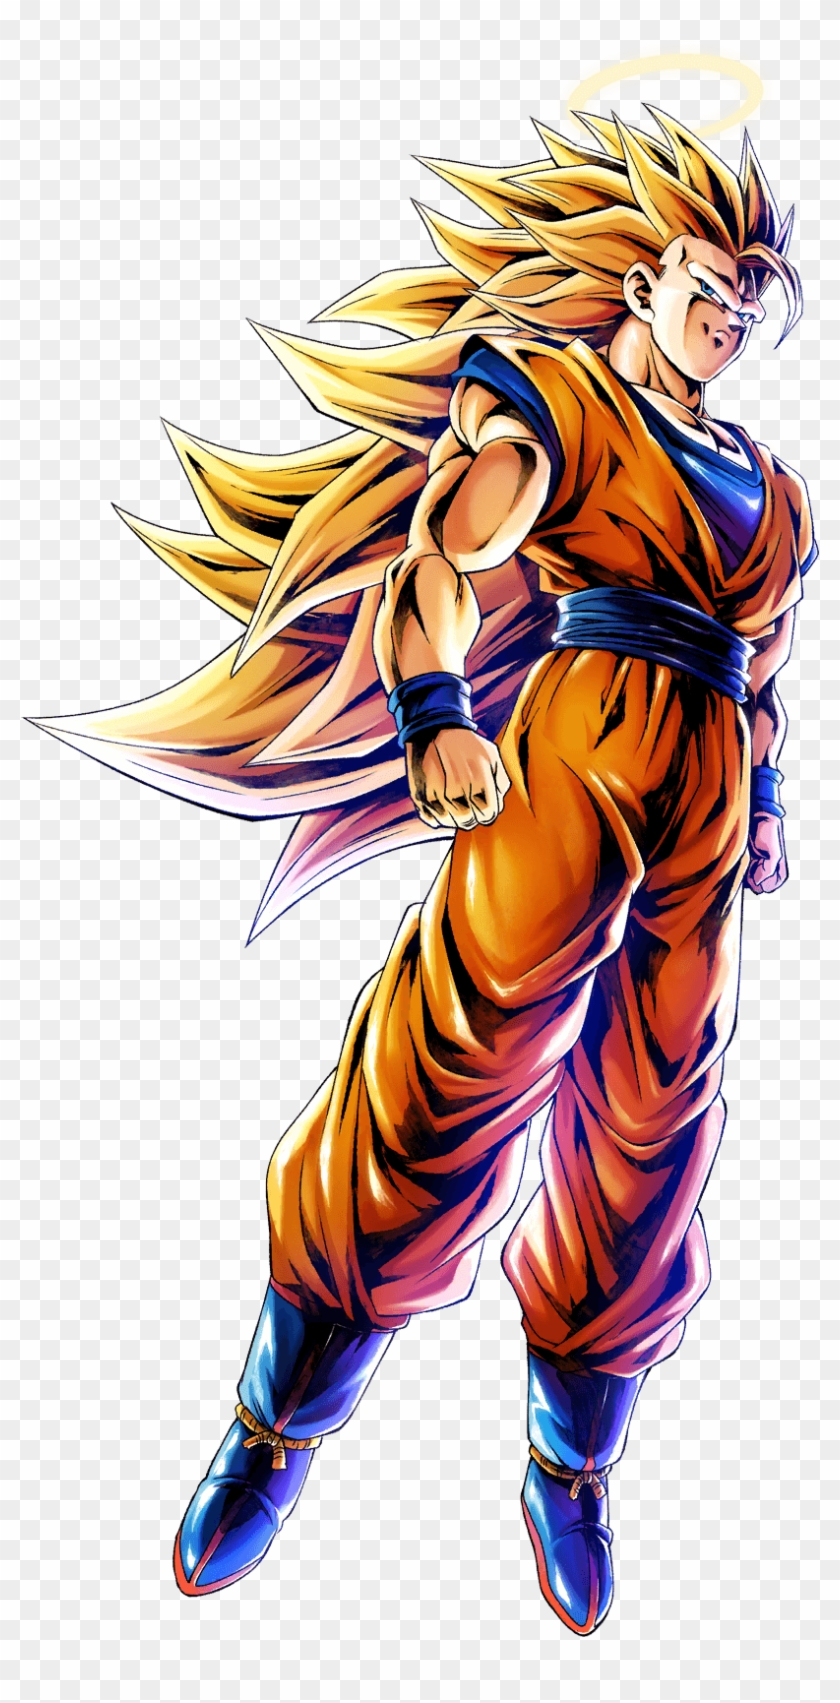 Gohan Png Dragon Ball Legends Super Saiyan 3 Goku Clipart